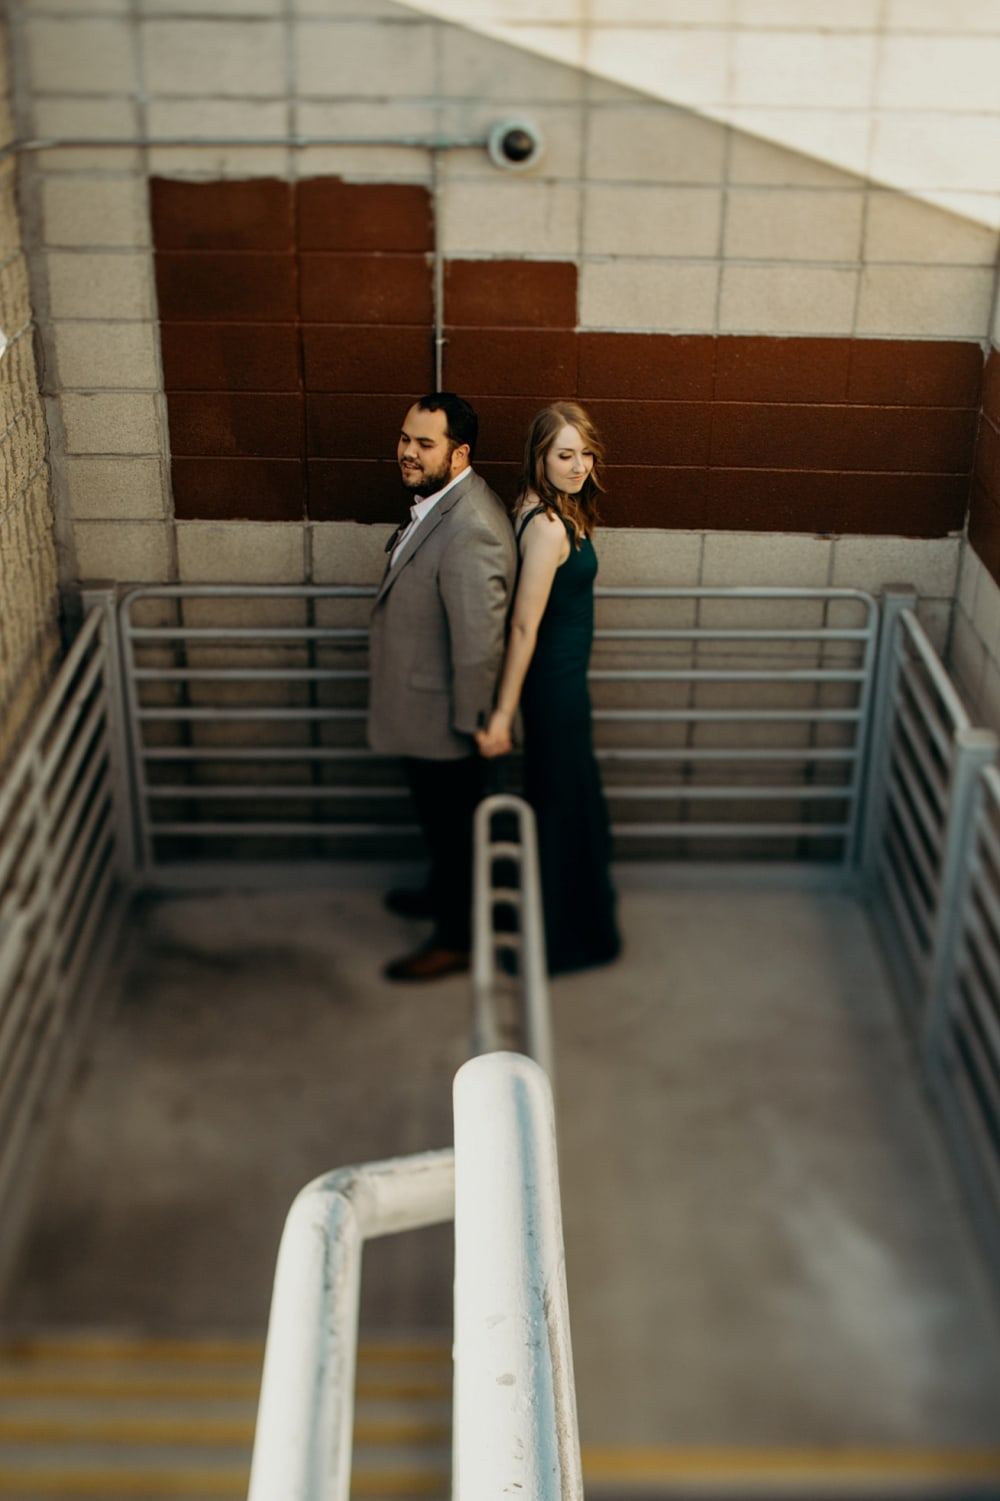 parking garage engagement session